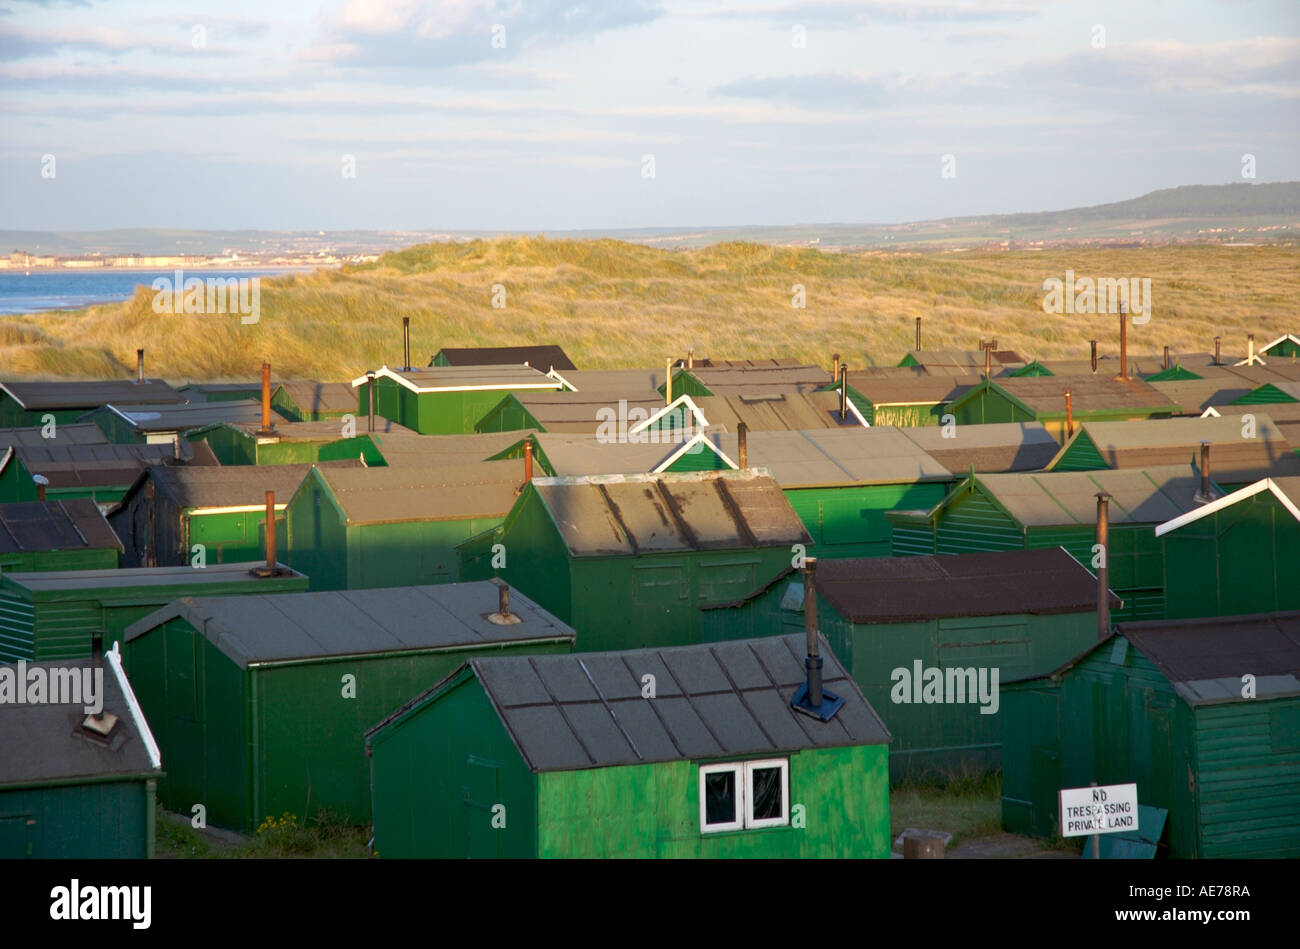 Fishing huts by Corus steelworks - Stock Image